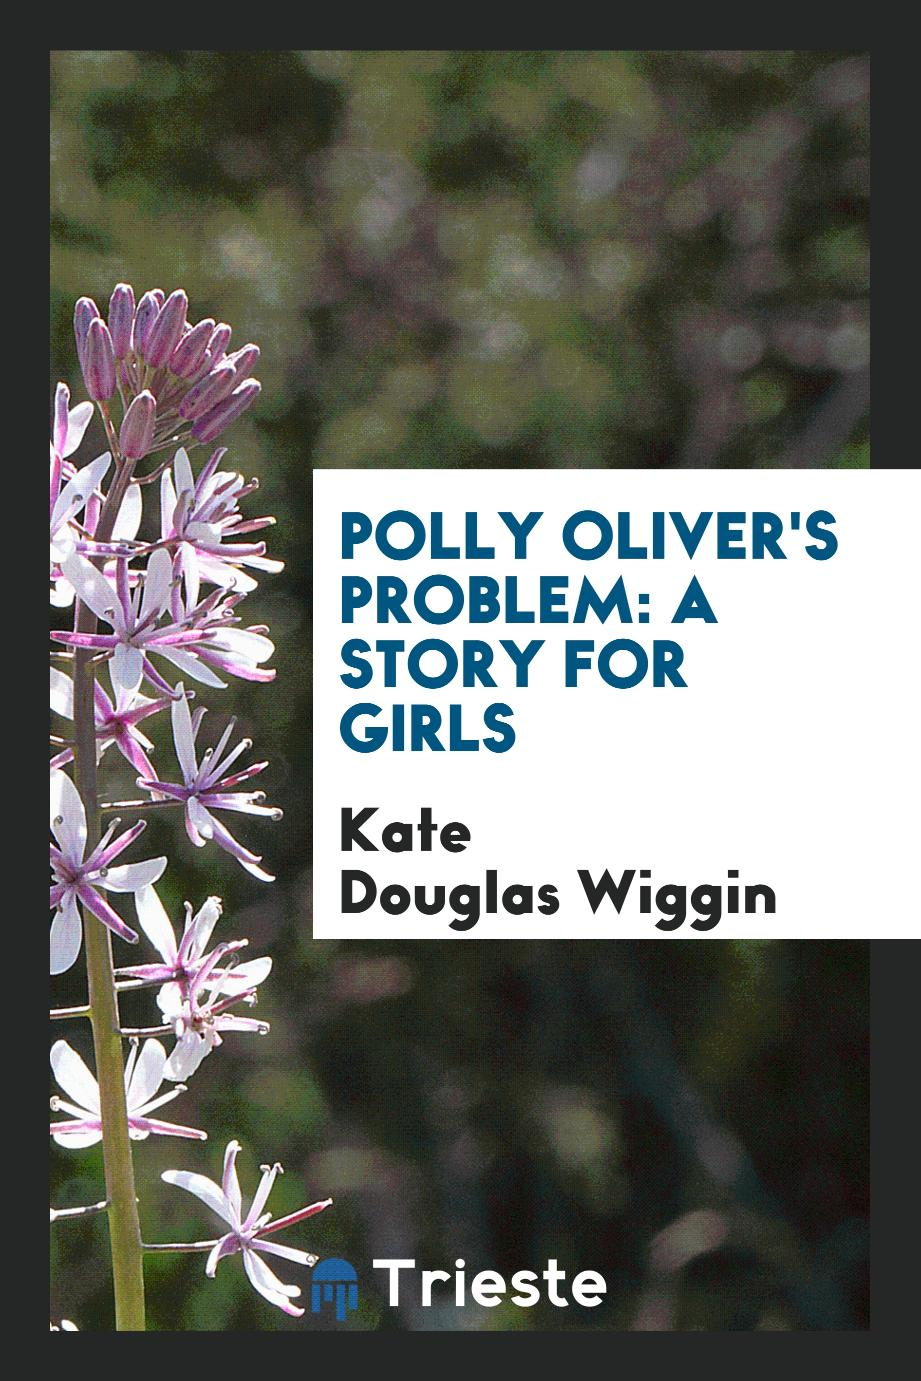 Polly Oliver's problem: a story for girls